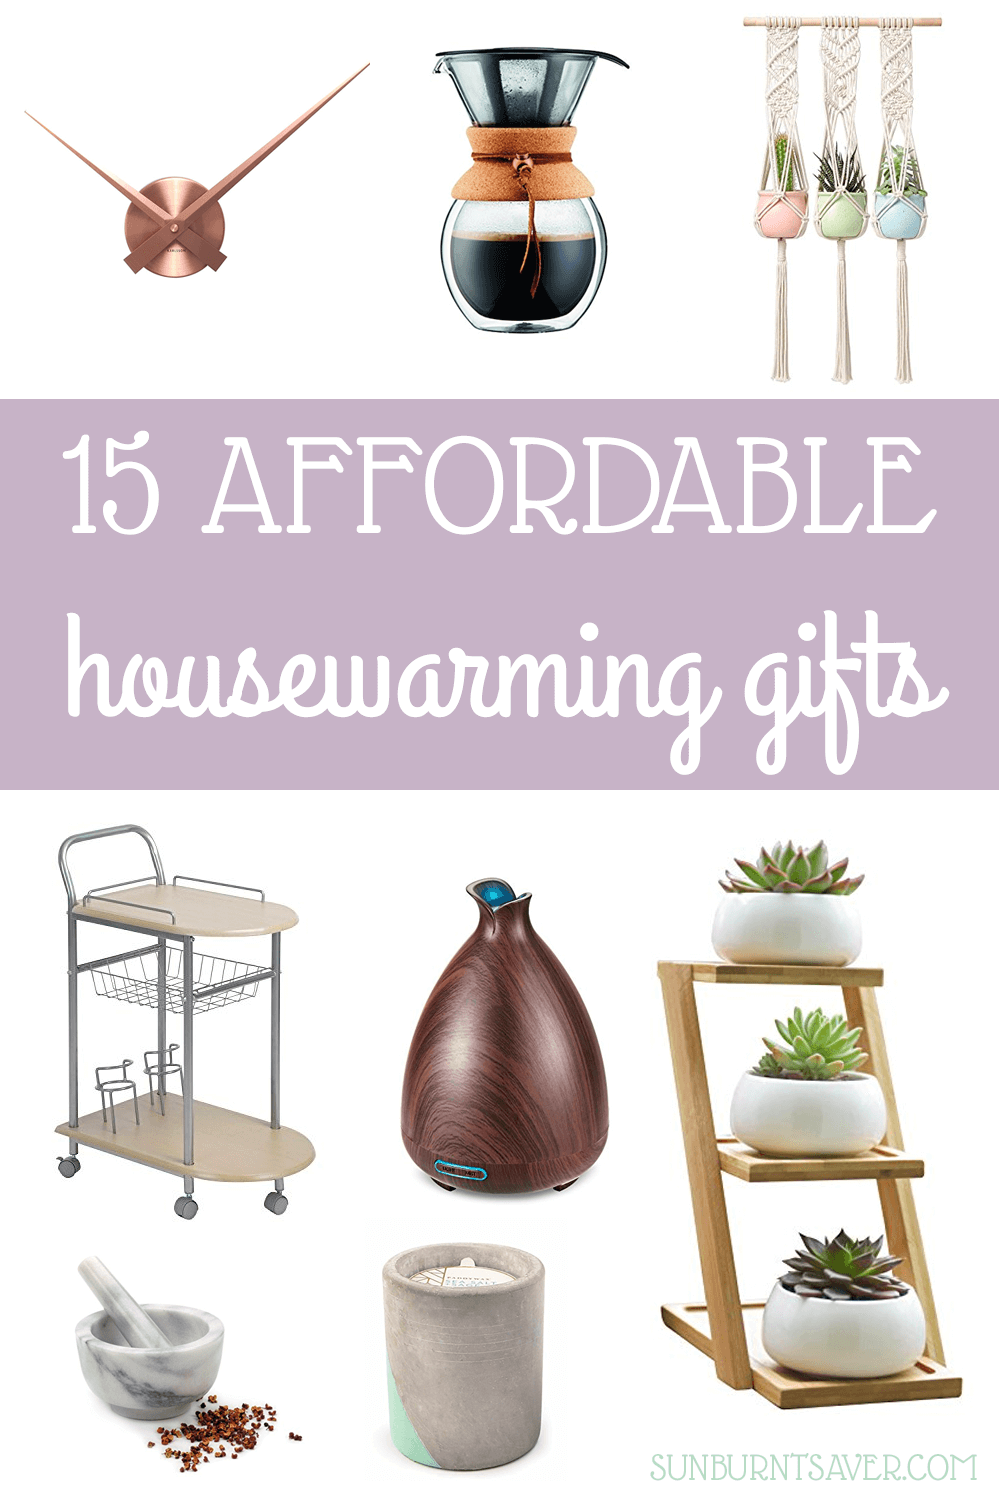 15 Affordable And Cute Housewarming Gifts